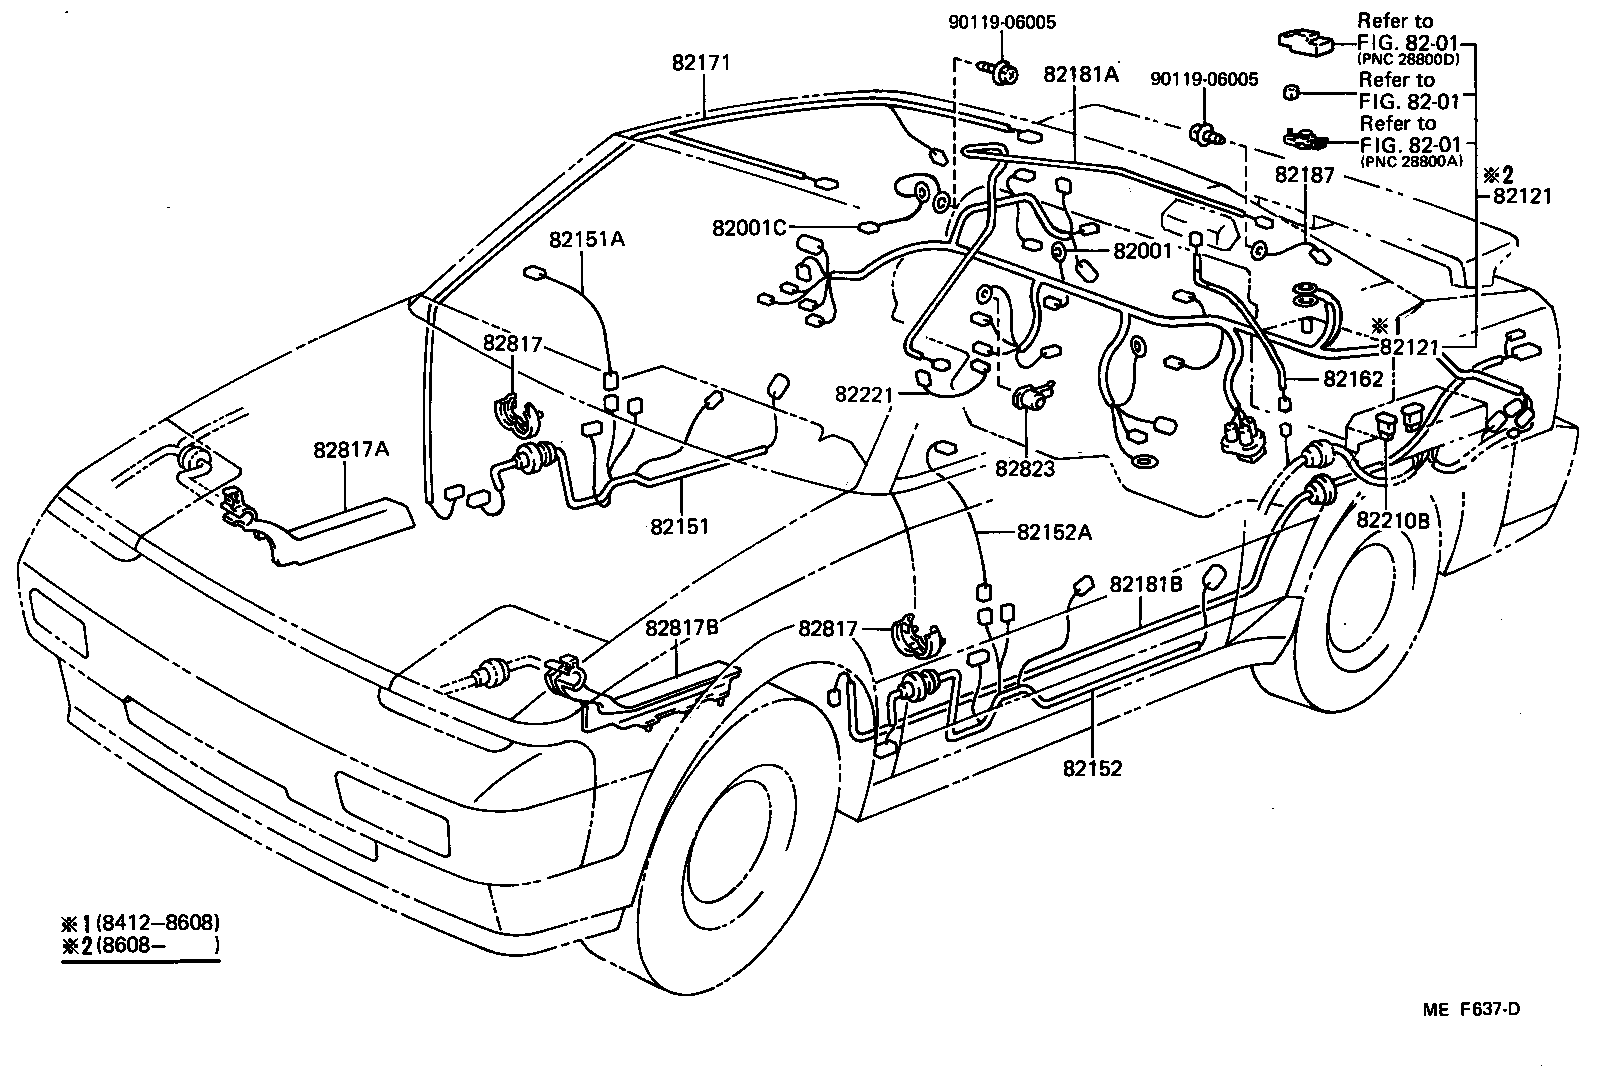 hight resolution of wiring clamp illust no 2 of 4 8412 toyota mr2 aw11 north 1991 toyota mr2 wiring diagram toyota mr2 wiring